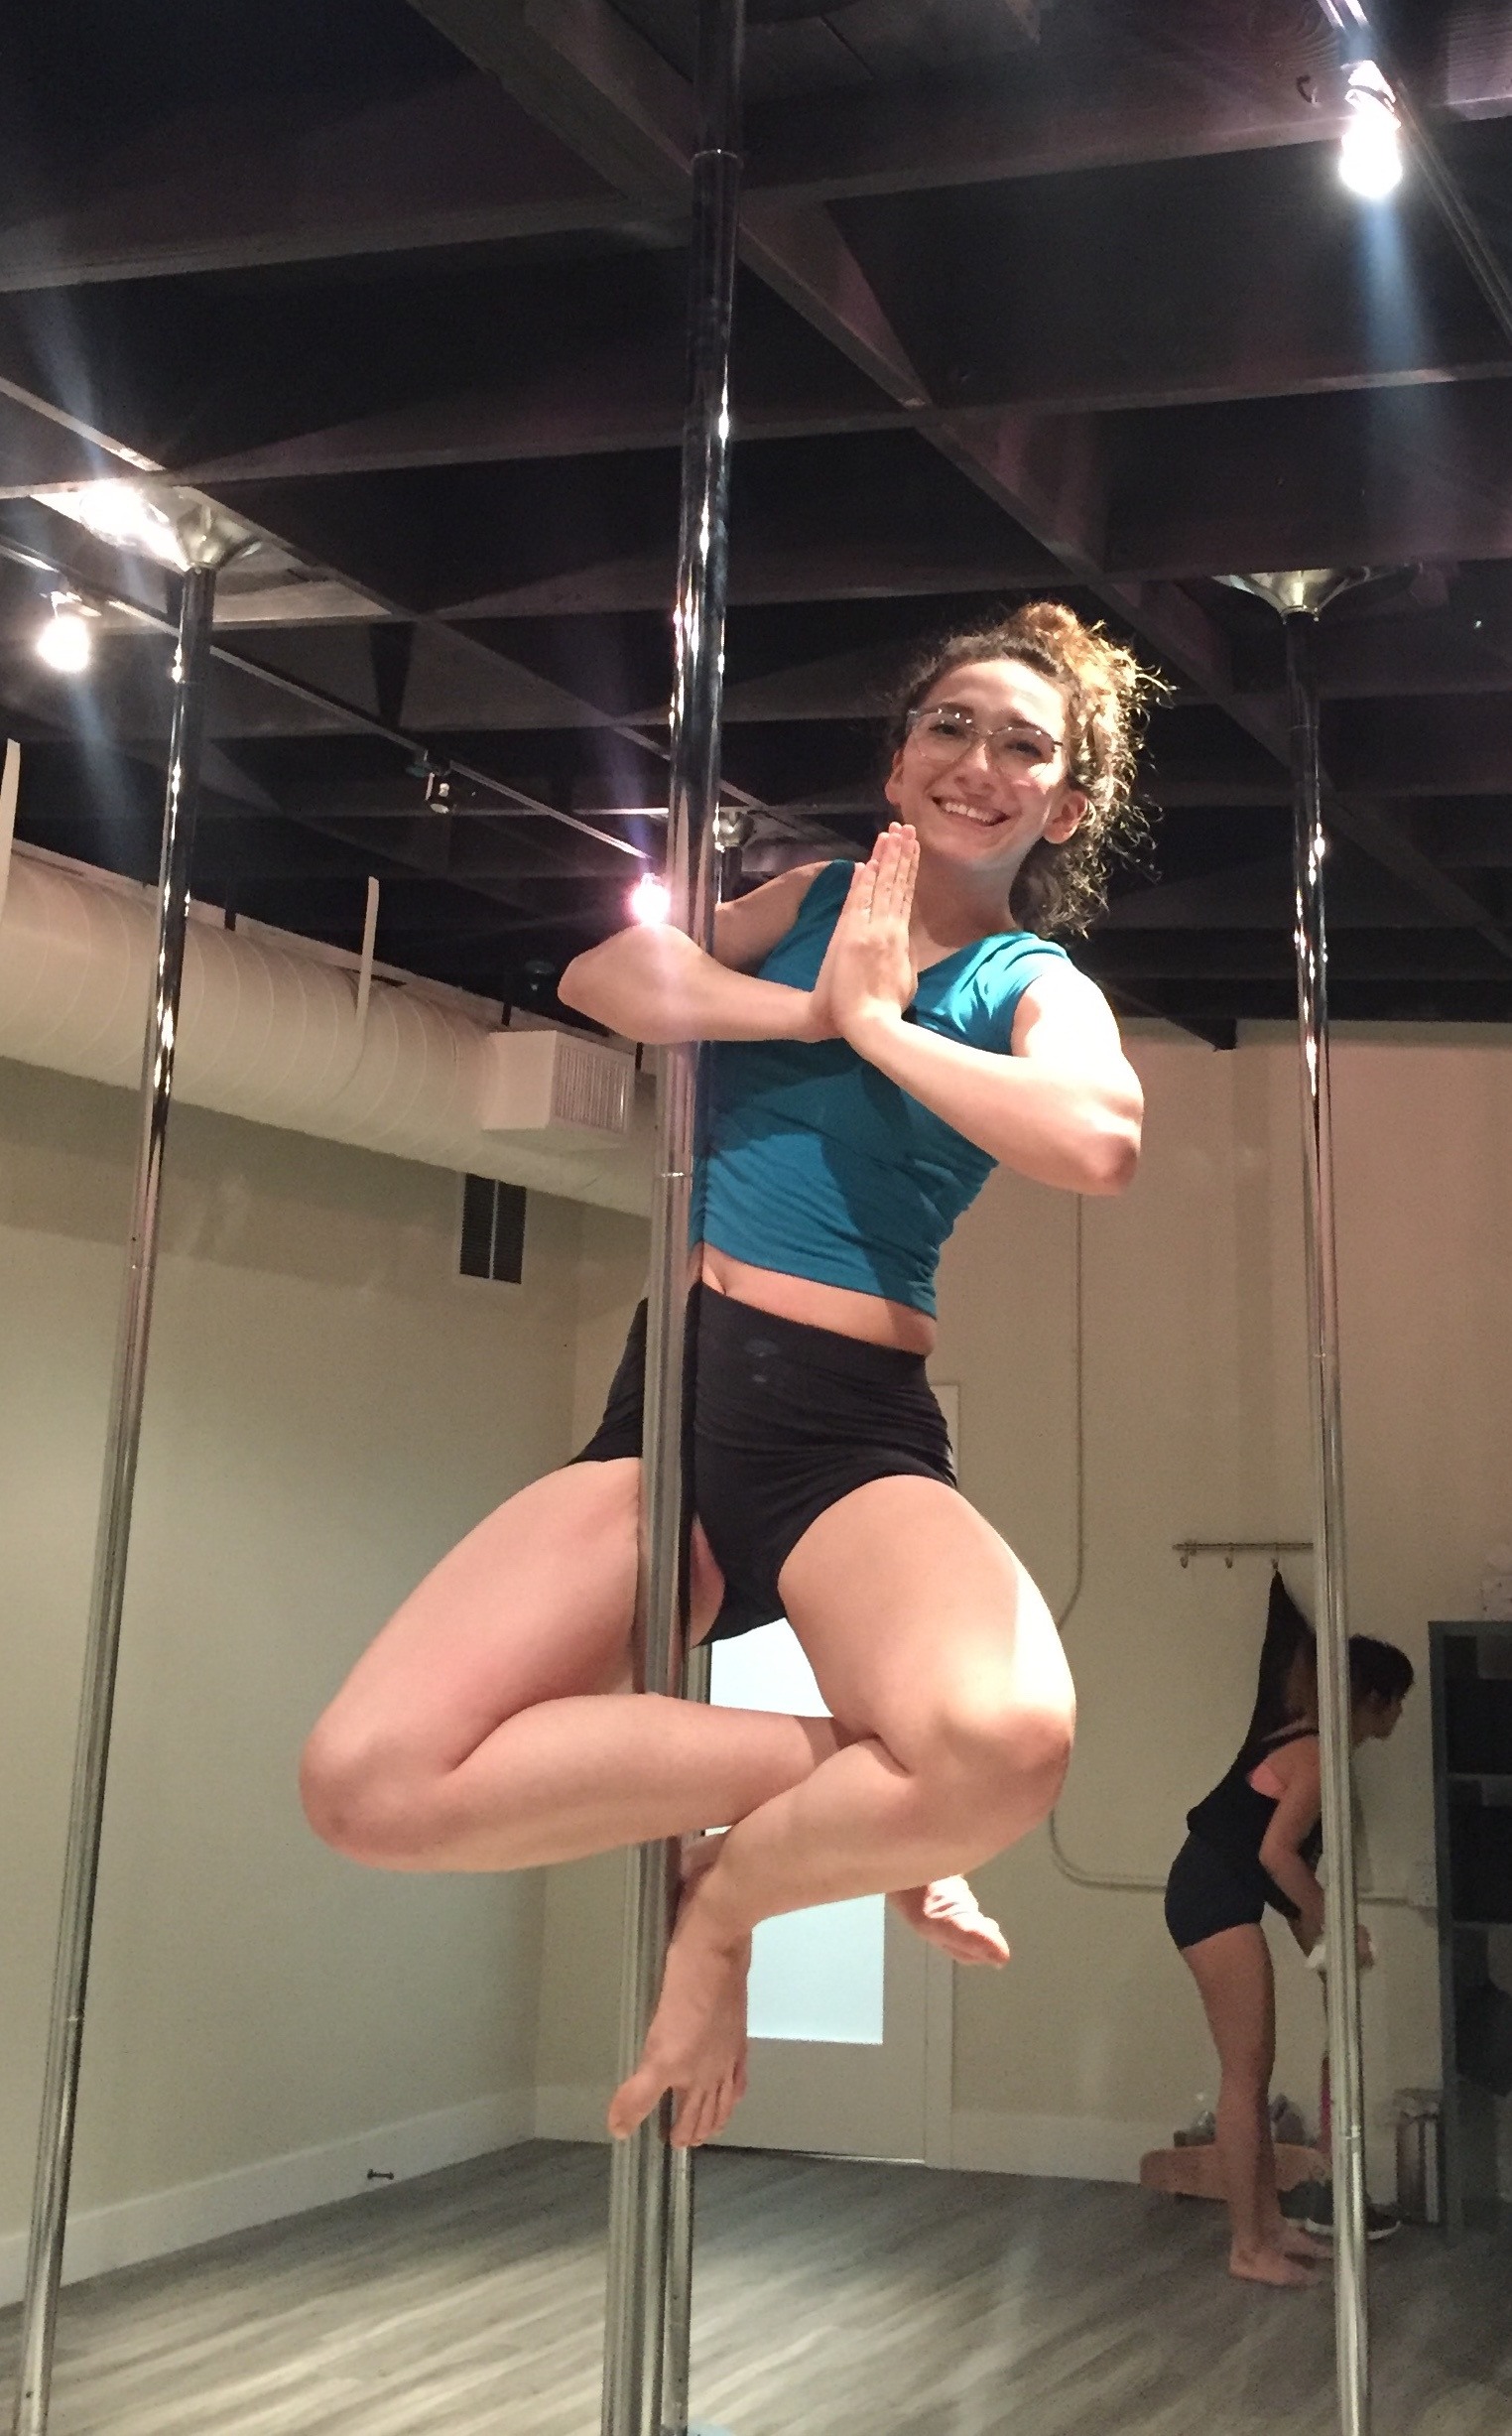 pole dance, pole fitness, pole move, pole pose